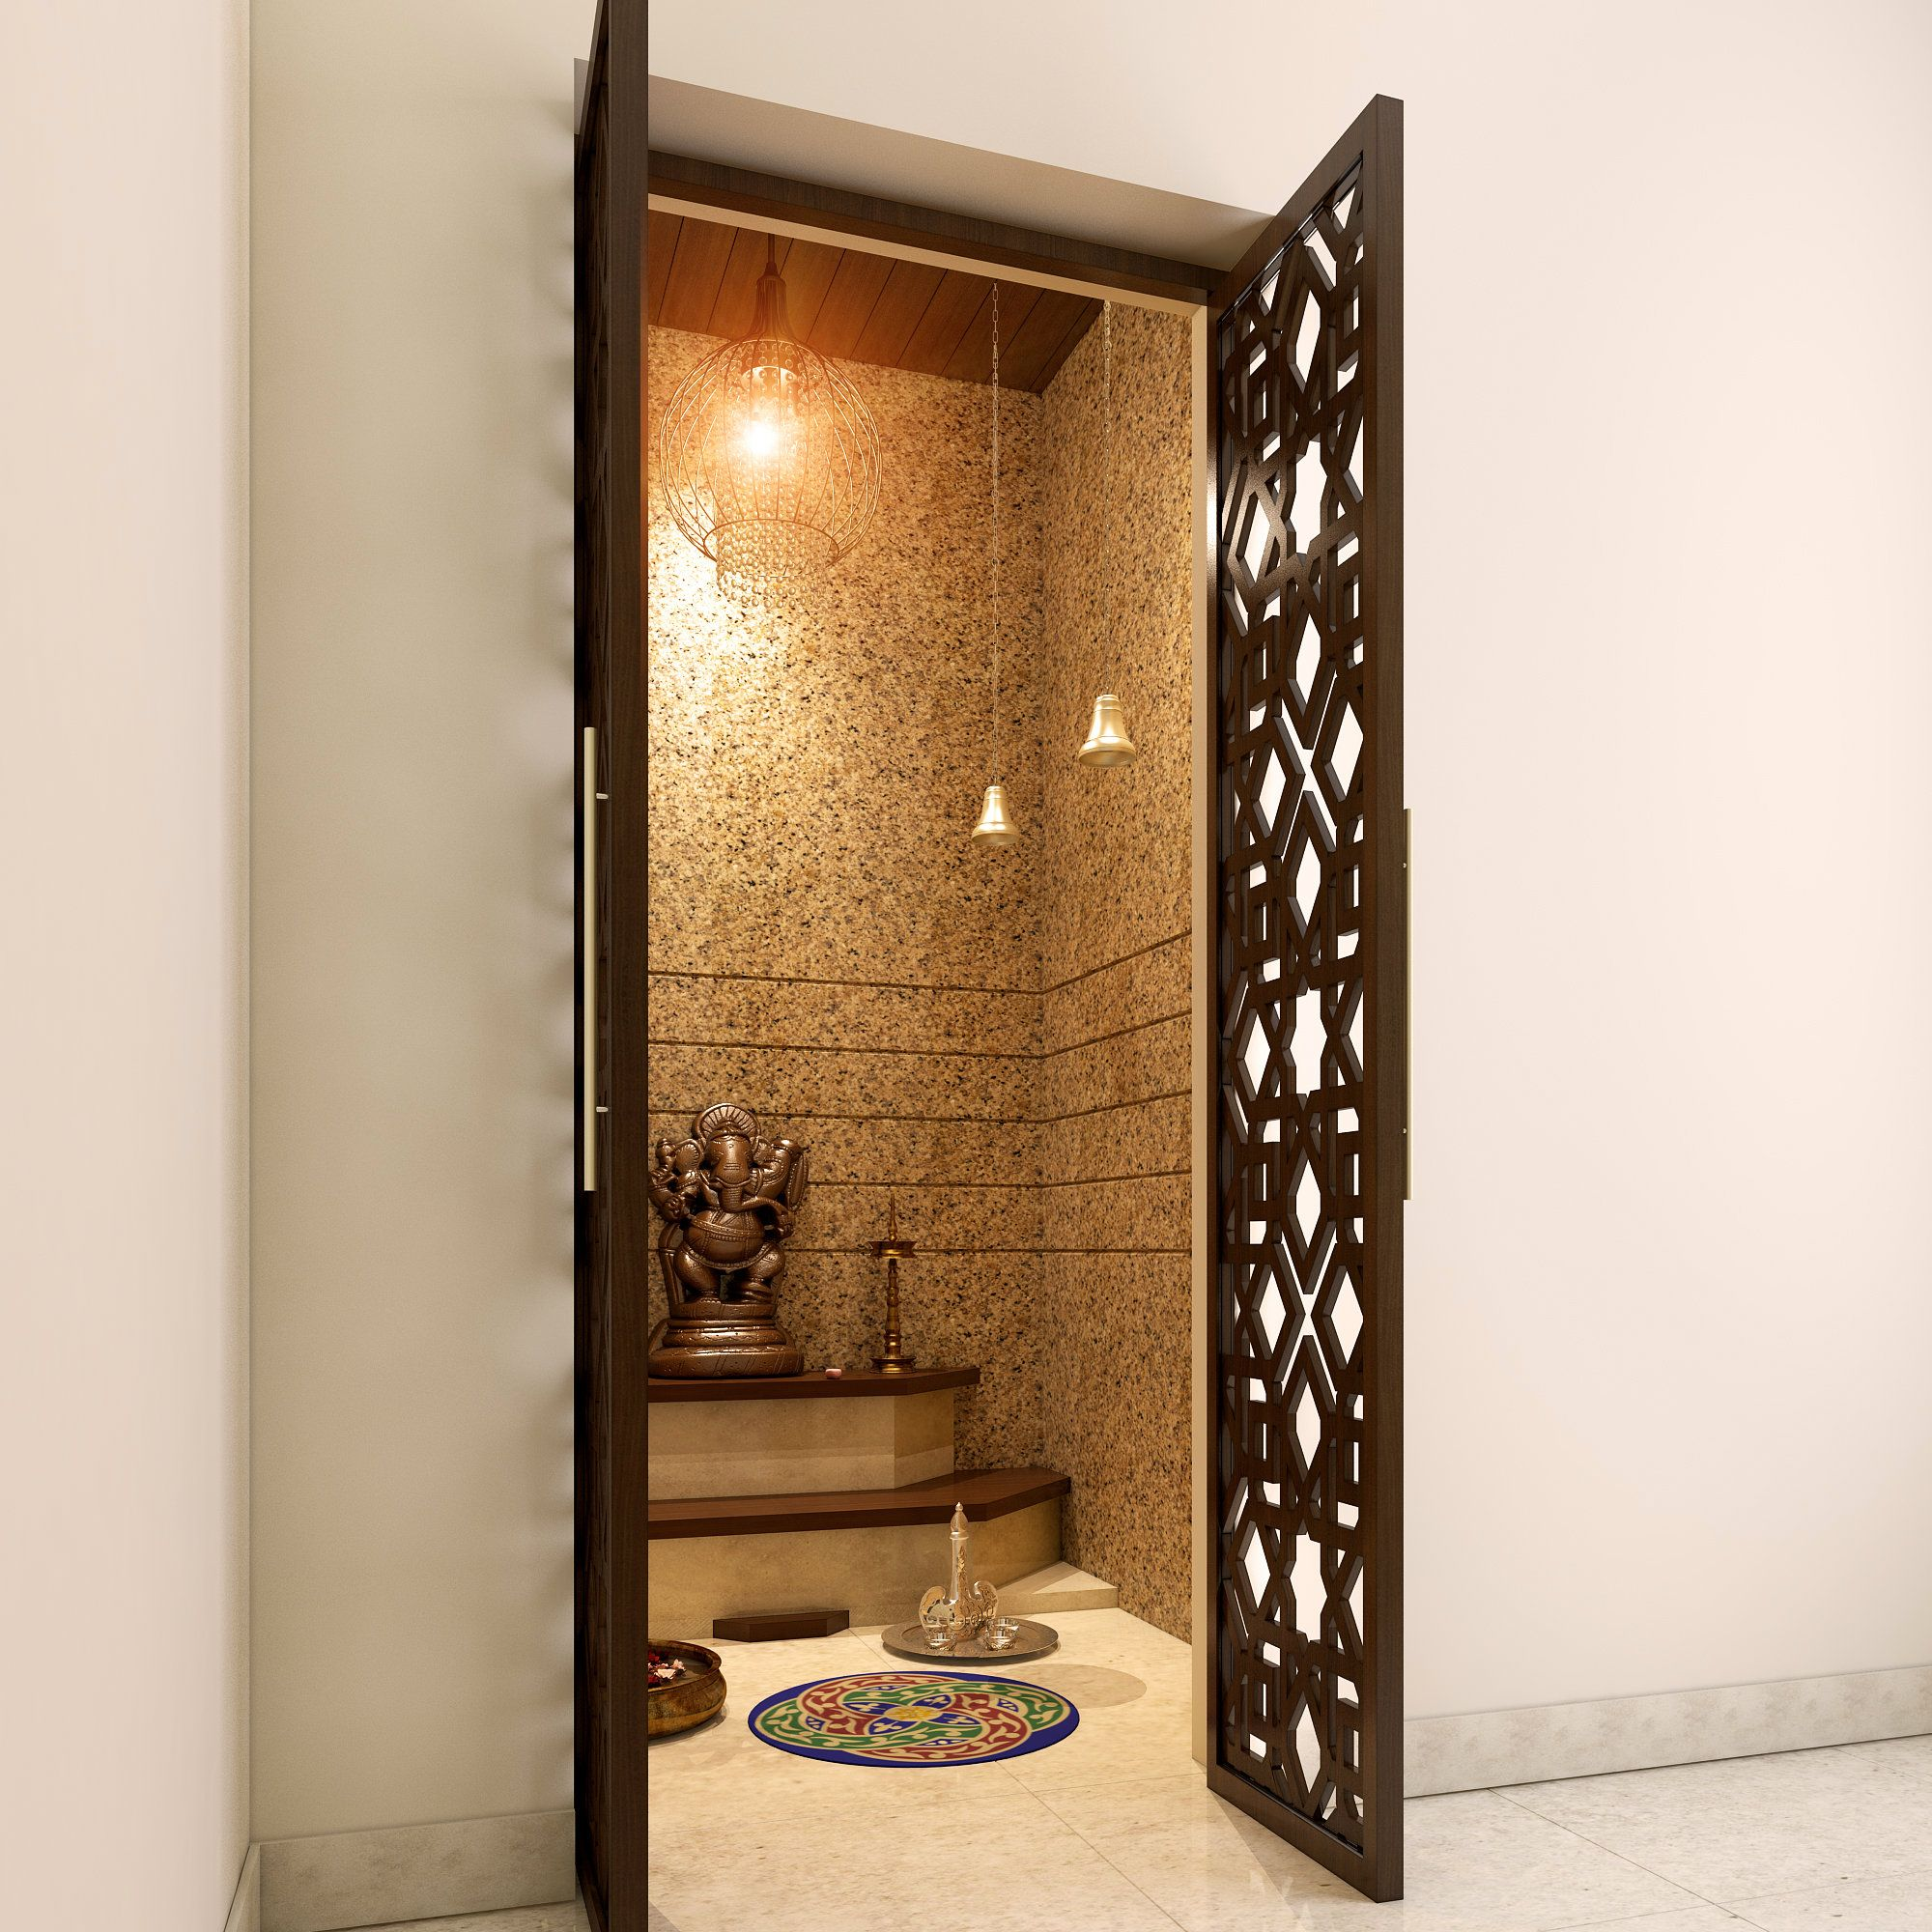 Lattice doors that make your pooja room